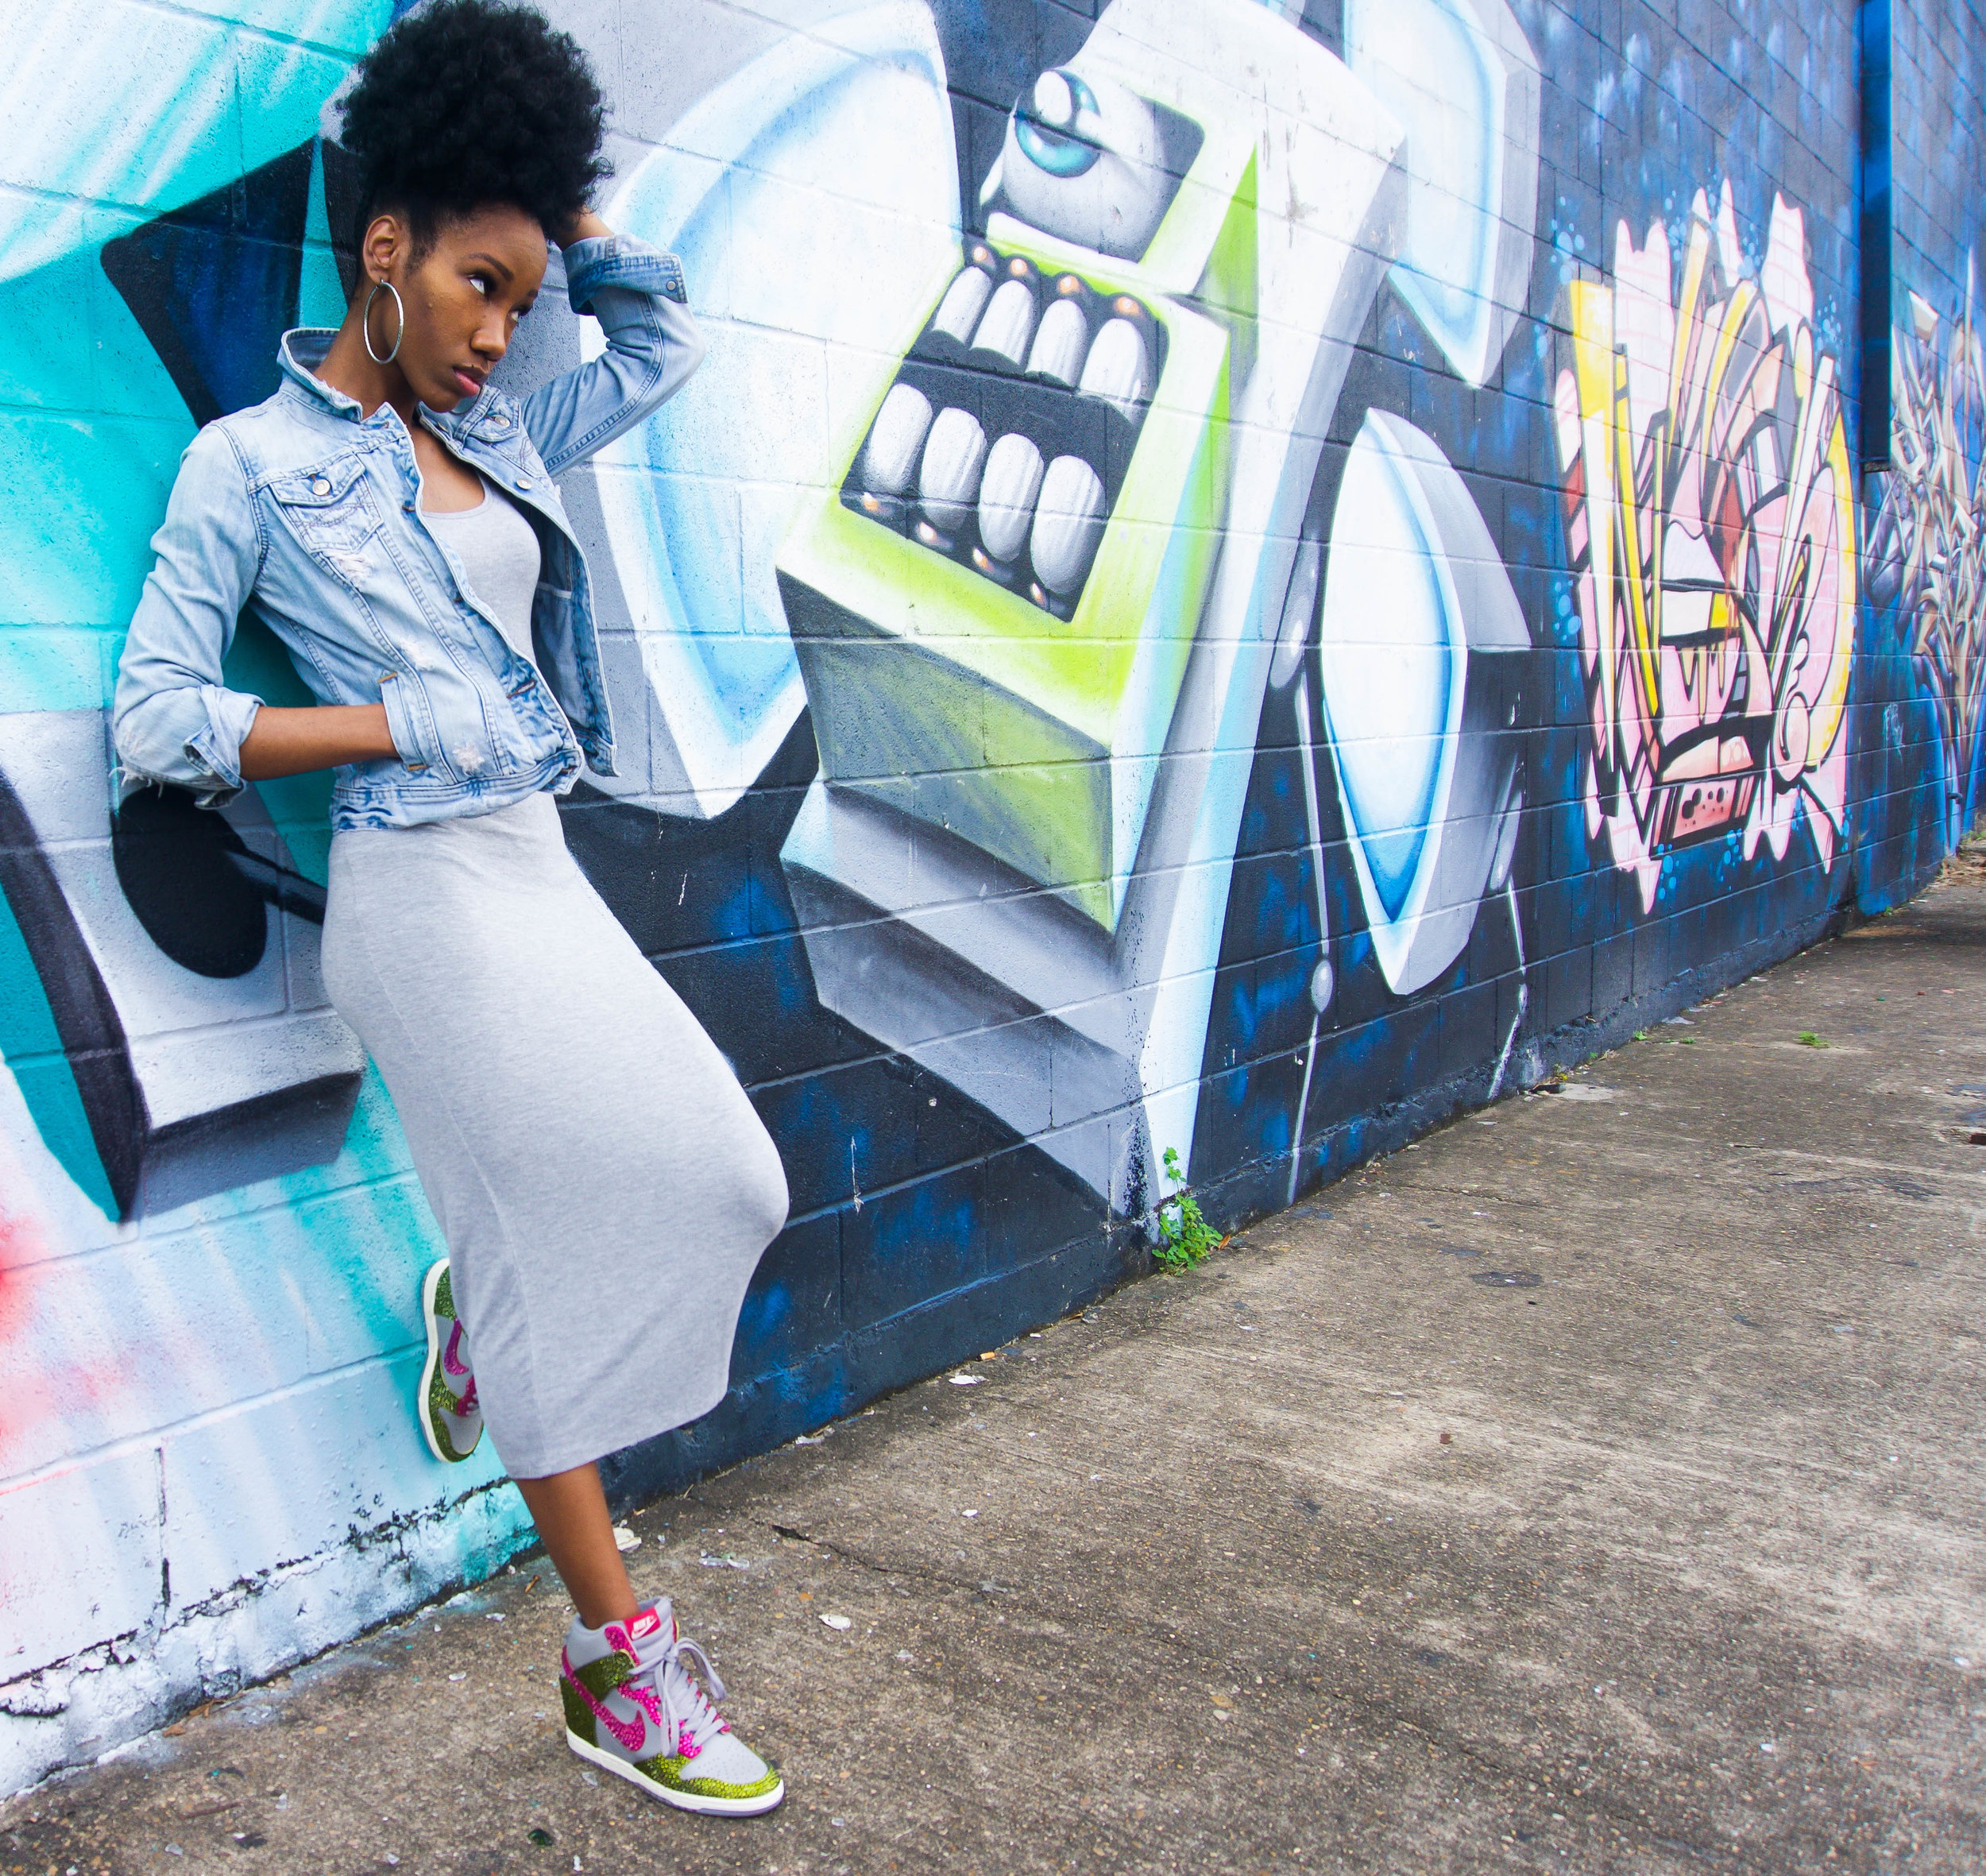 Dresses to wear with sneakers? Yes, it's possible! Got my shoes bedazzled and a basic dress to complete this sneaker outfit. You'll also find a couple of dresses in this post to help you develop your own sneaker style. Photo taken in Houston, in front of a graffiti mural. Rocking some custom made nikes (shoes bedazzled), denim jean jacket, hoop earrings, and a gray bodycon dress from Forever 21. A sneaker outfit for women.